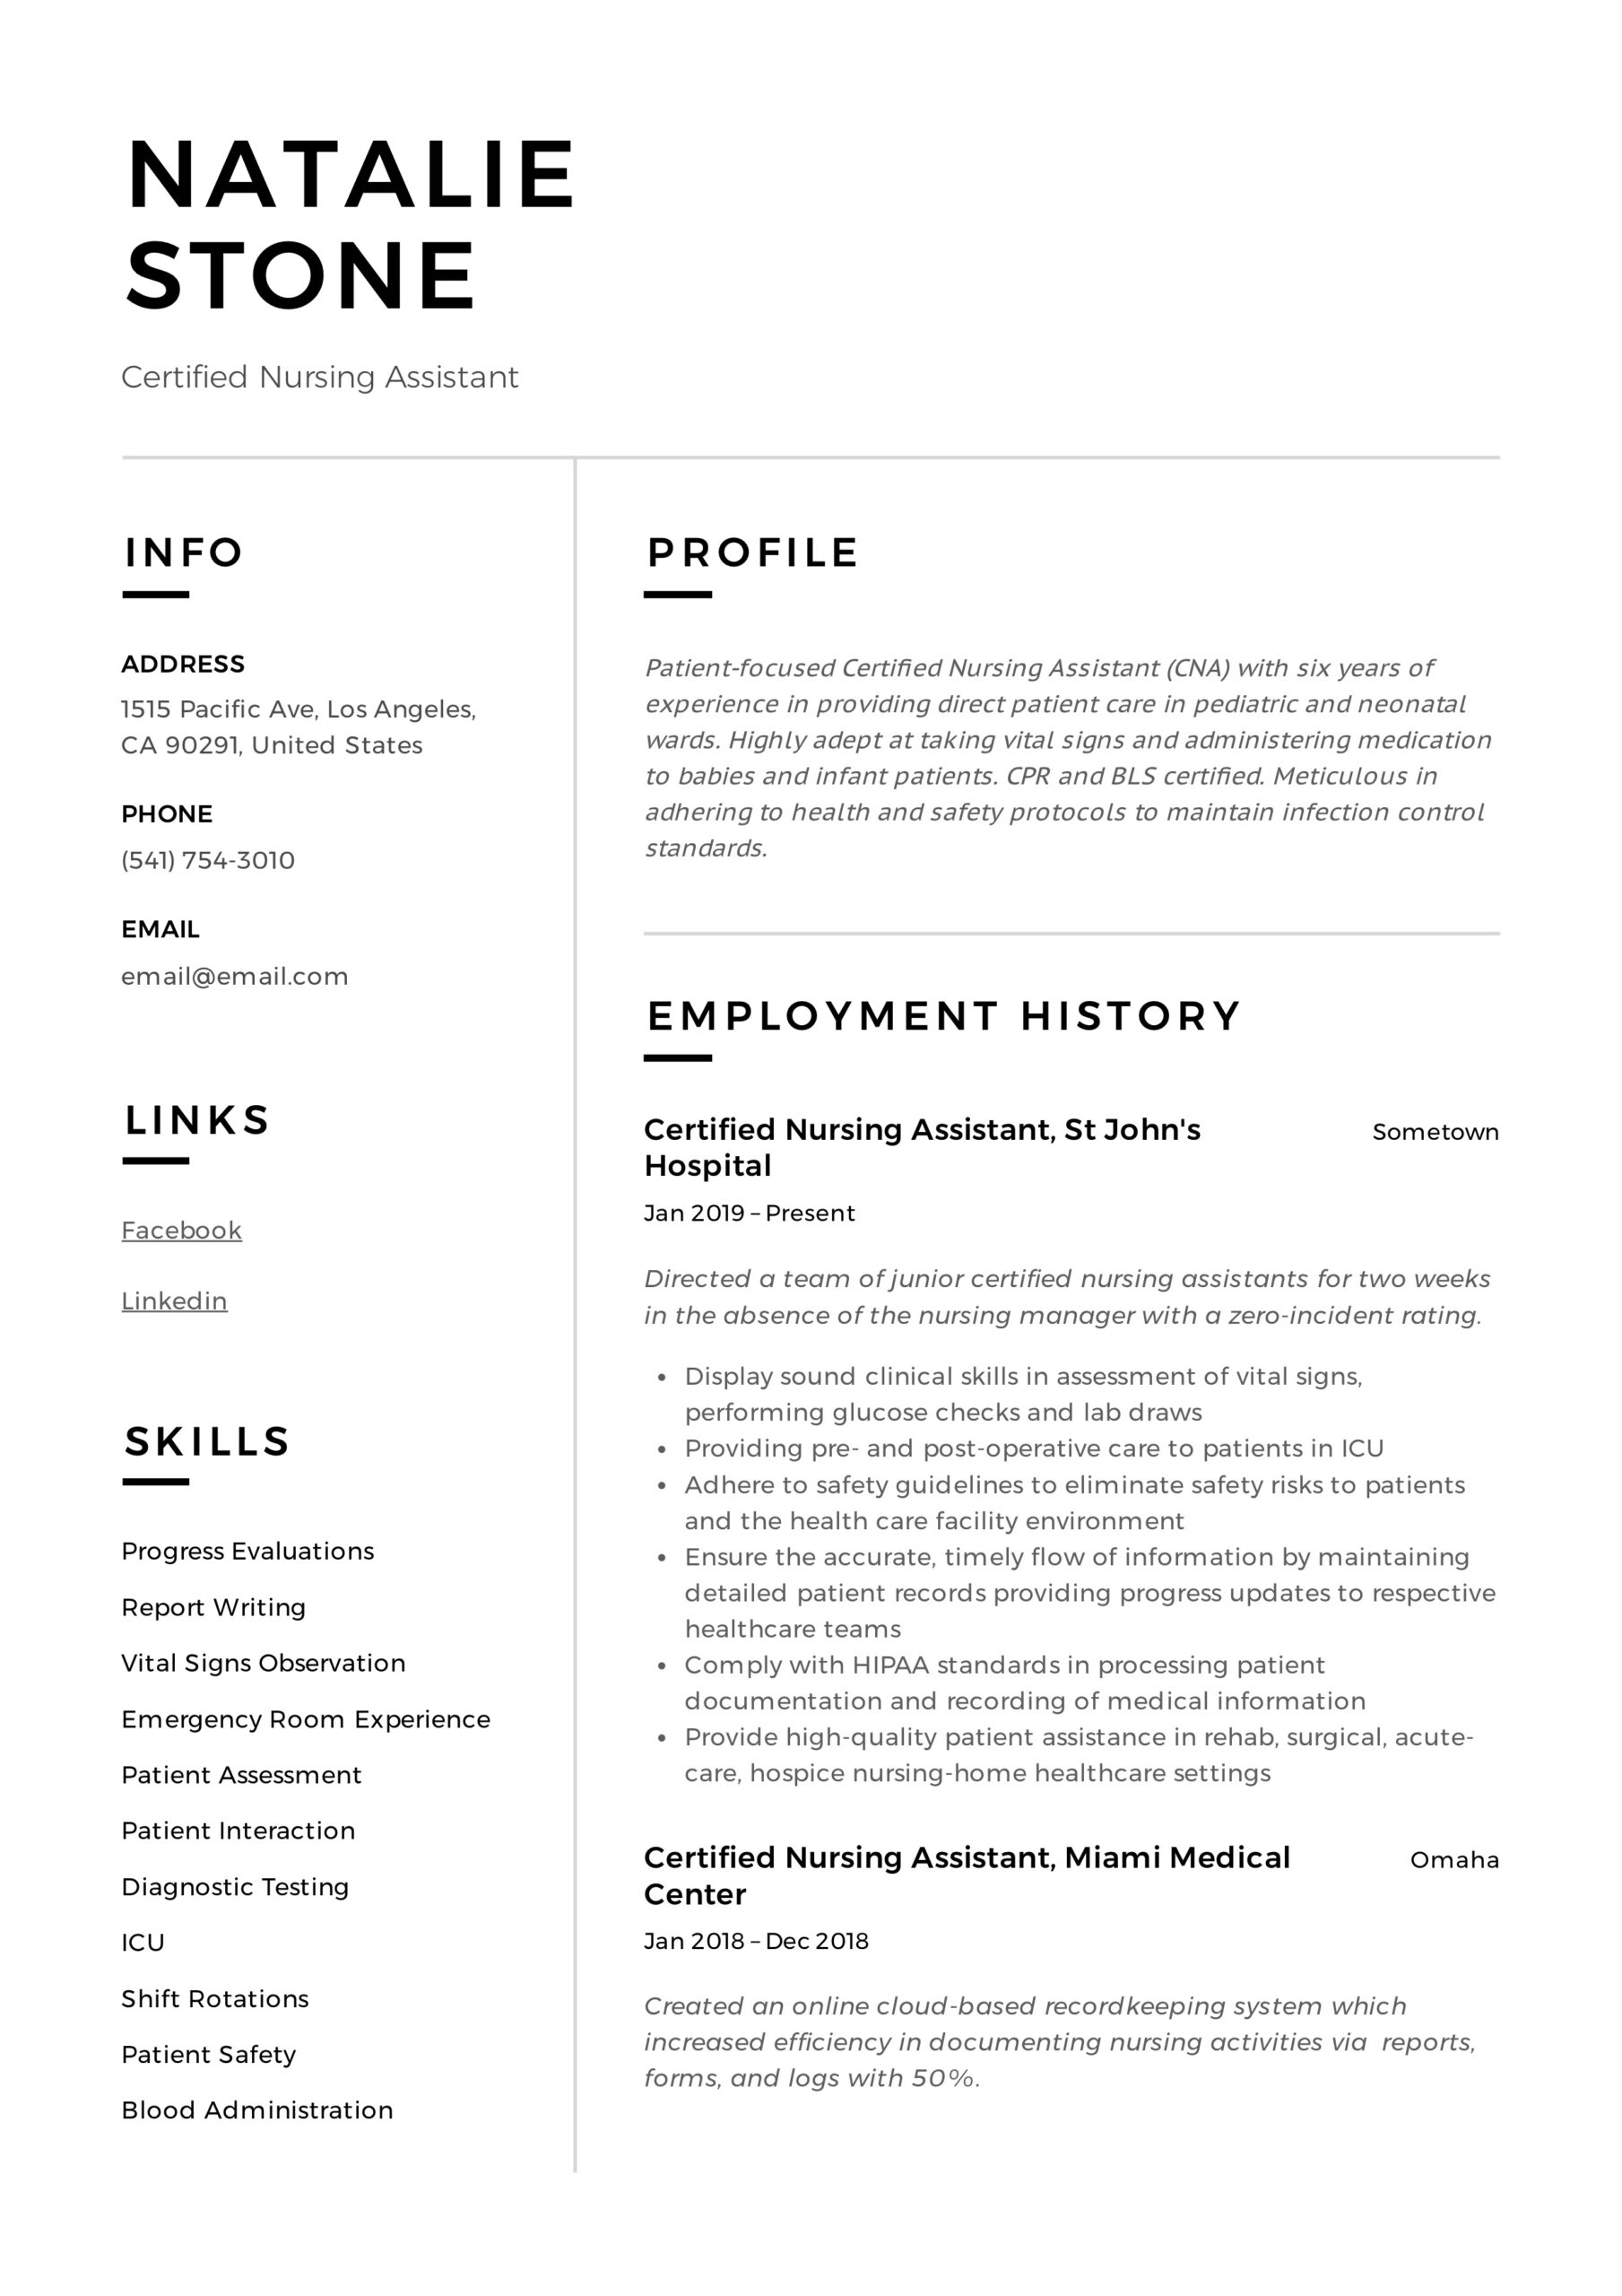 certified nursing assistant resume writing guide templates cna template free job purpose Resume Cna Resume Template Free